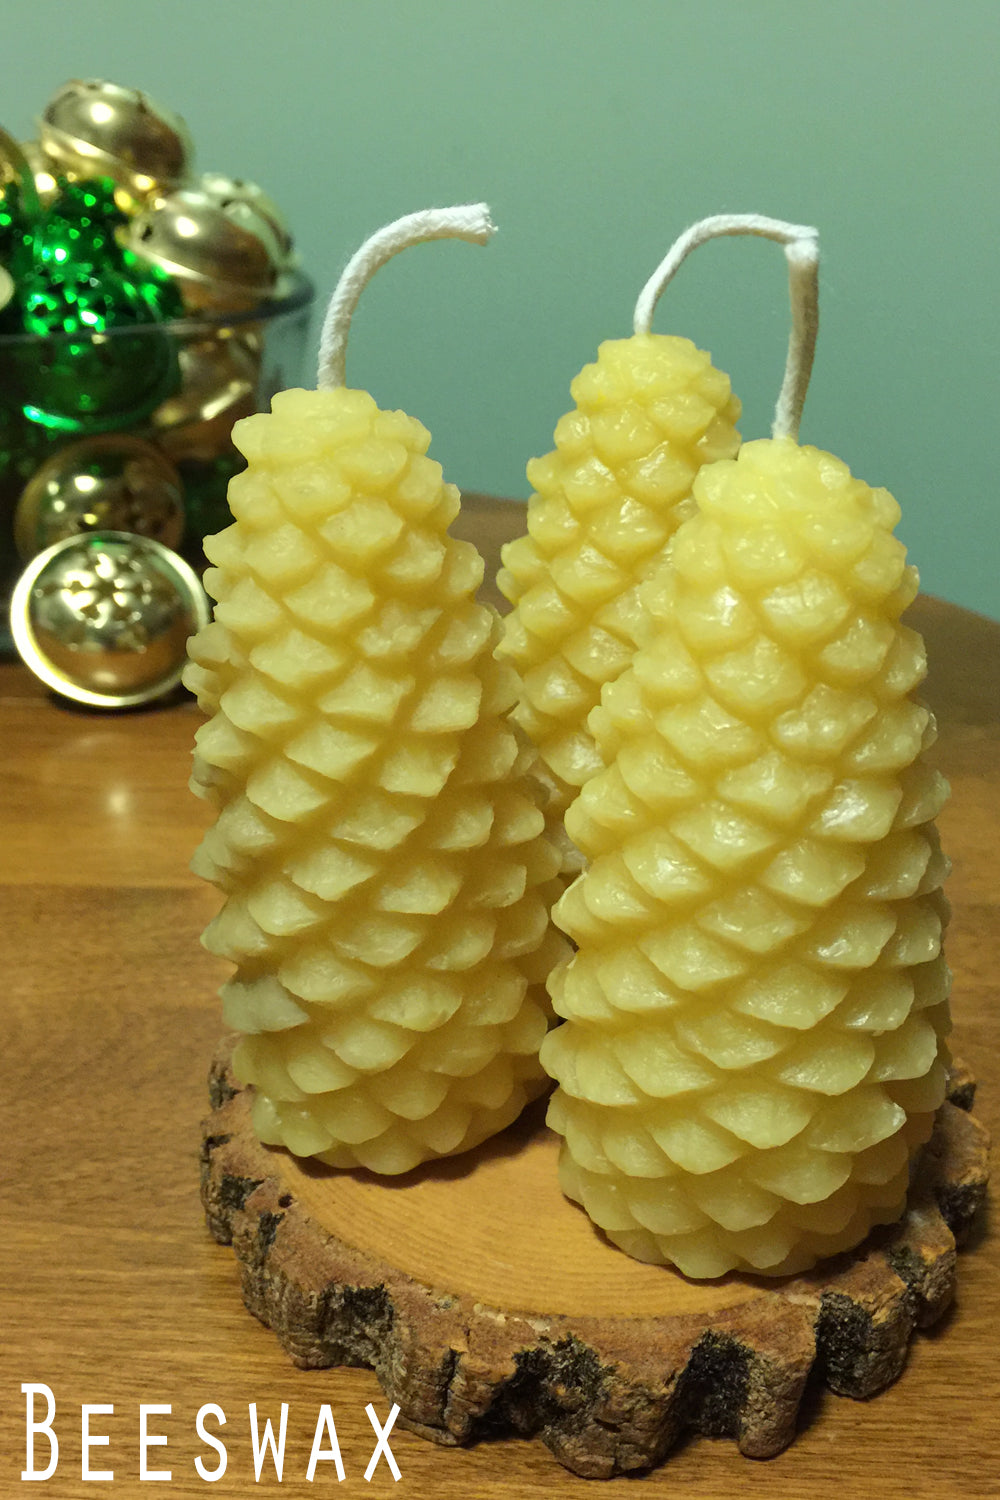 Beeswax Pinecone Candle - Lizzy Lane Farm Apothecary